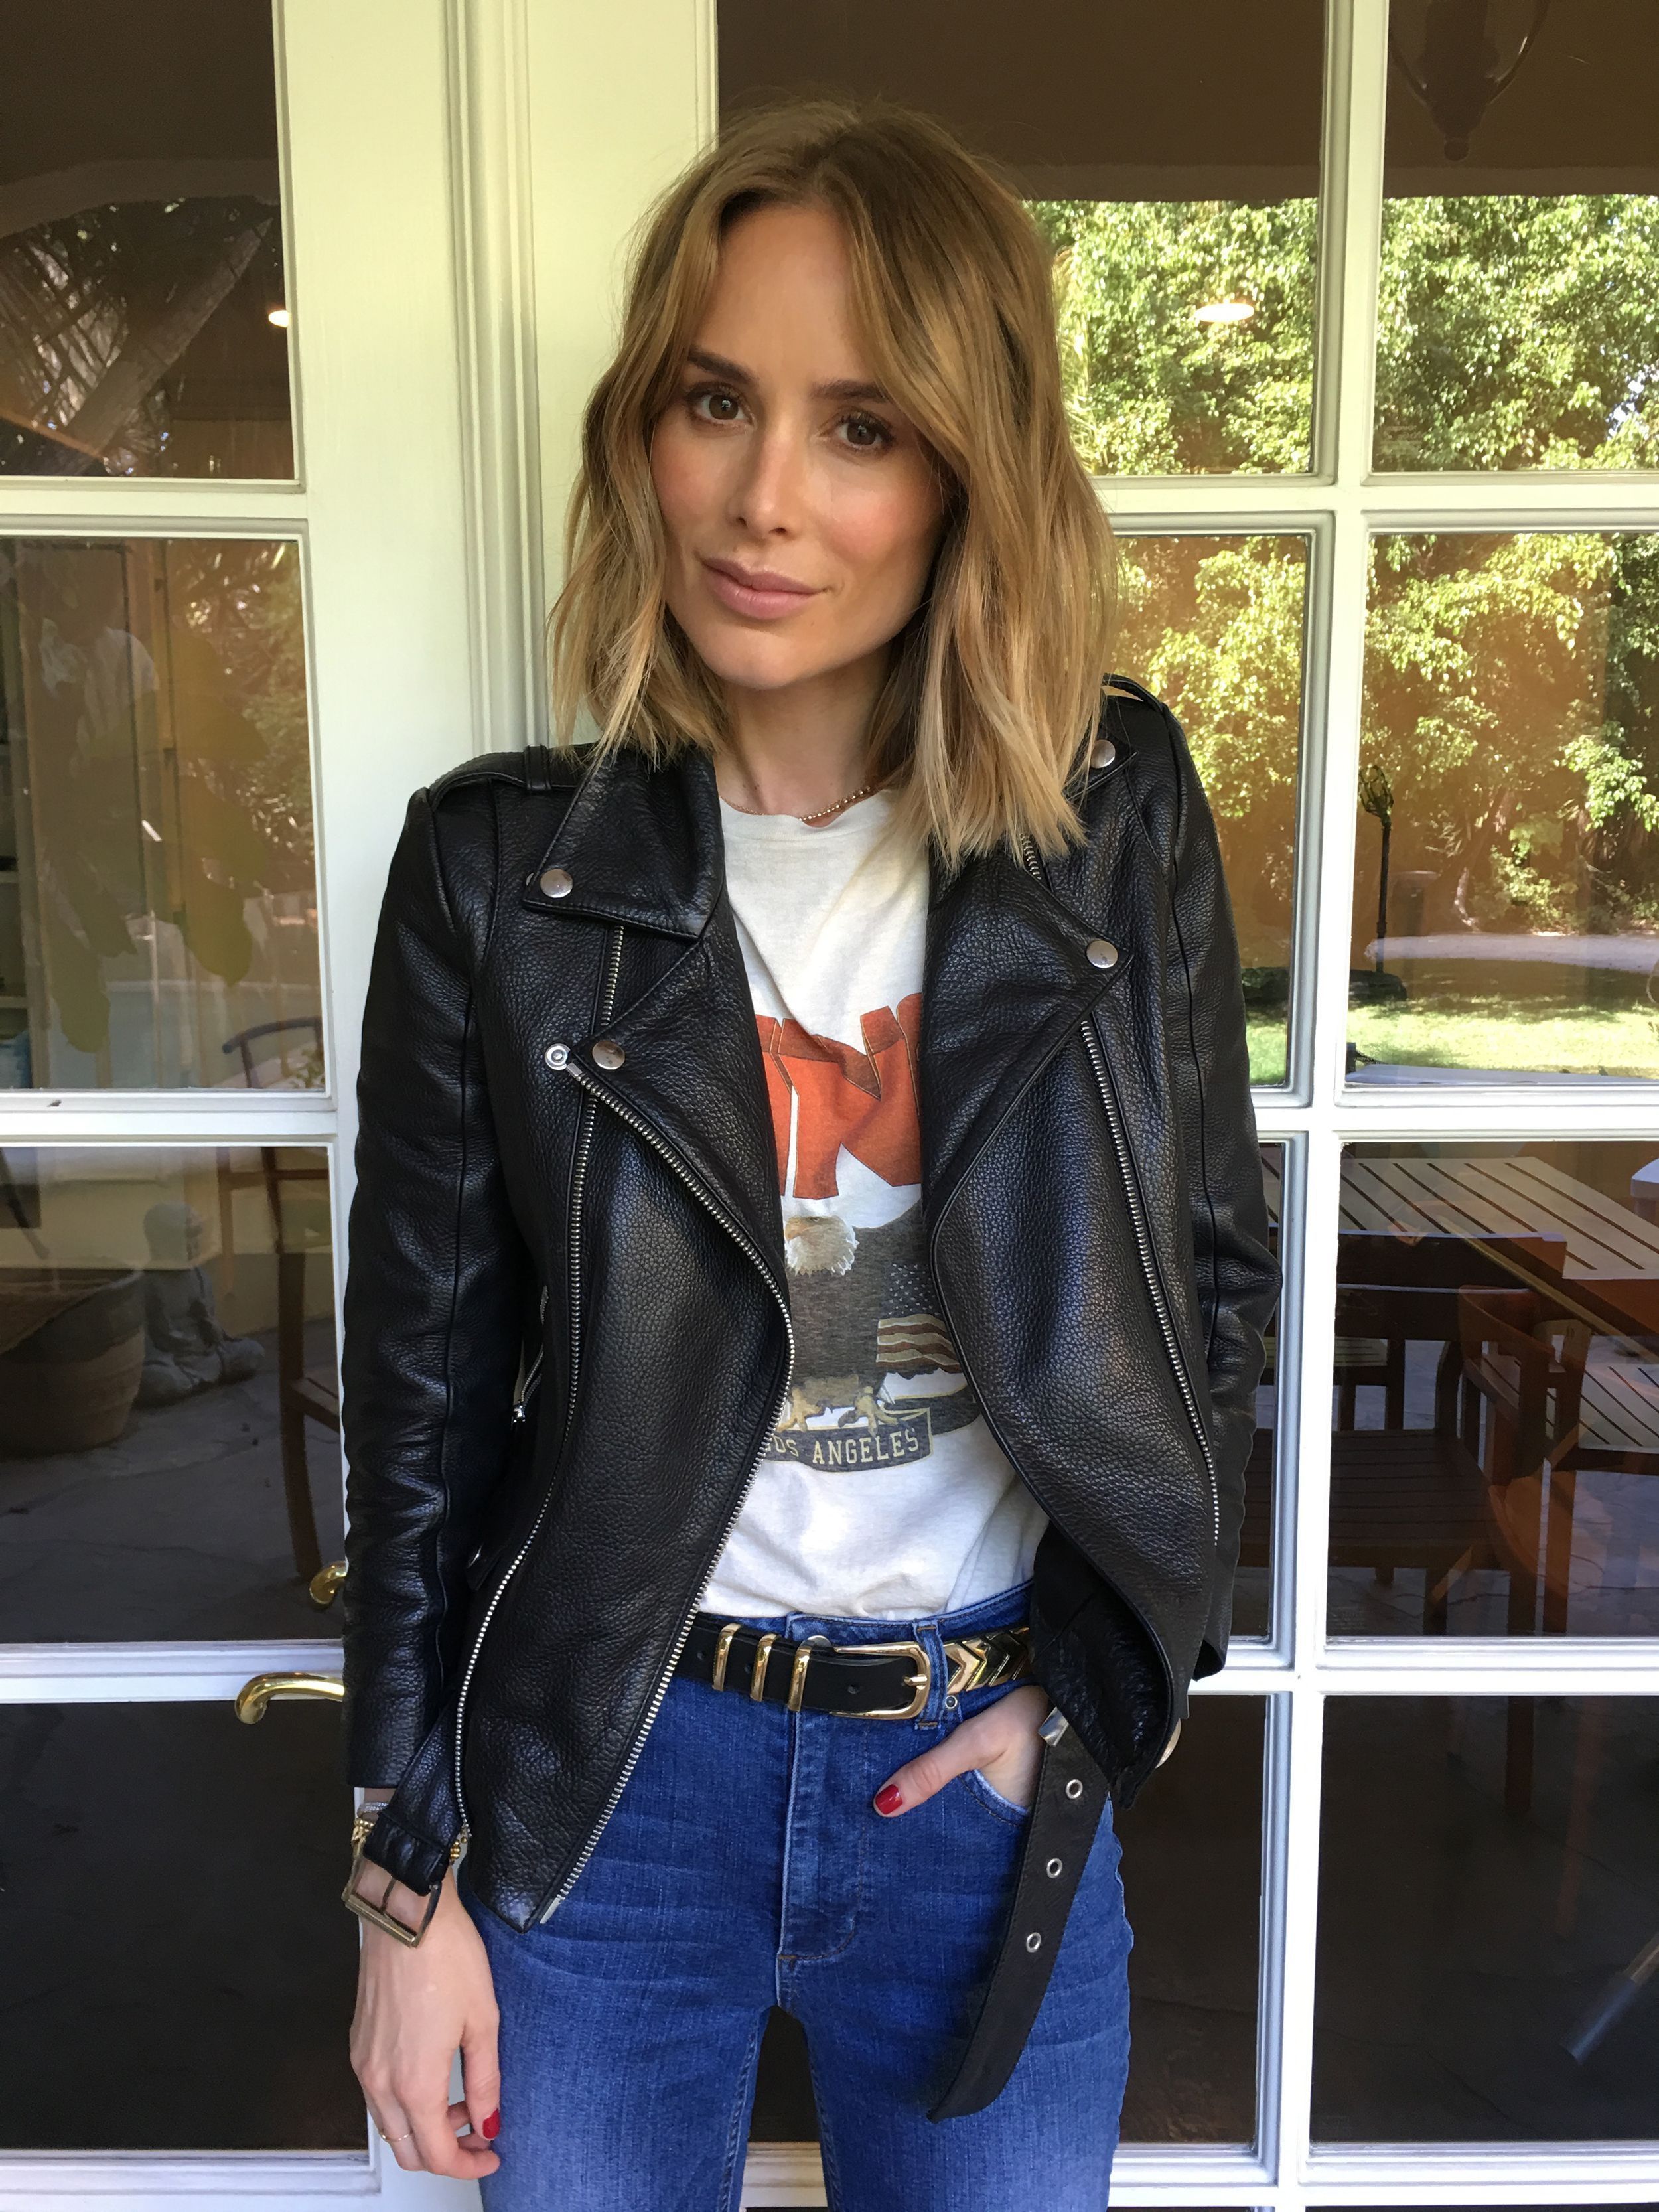 51 Classy And Casual Women Leather Jacket Outfits Ideas Vis Wed Leather Jackets Women Leather Jacket Outfits Jacket Outfits [ 3333 x 2500 Pixel ]